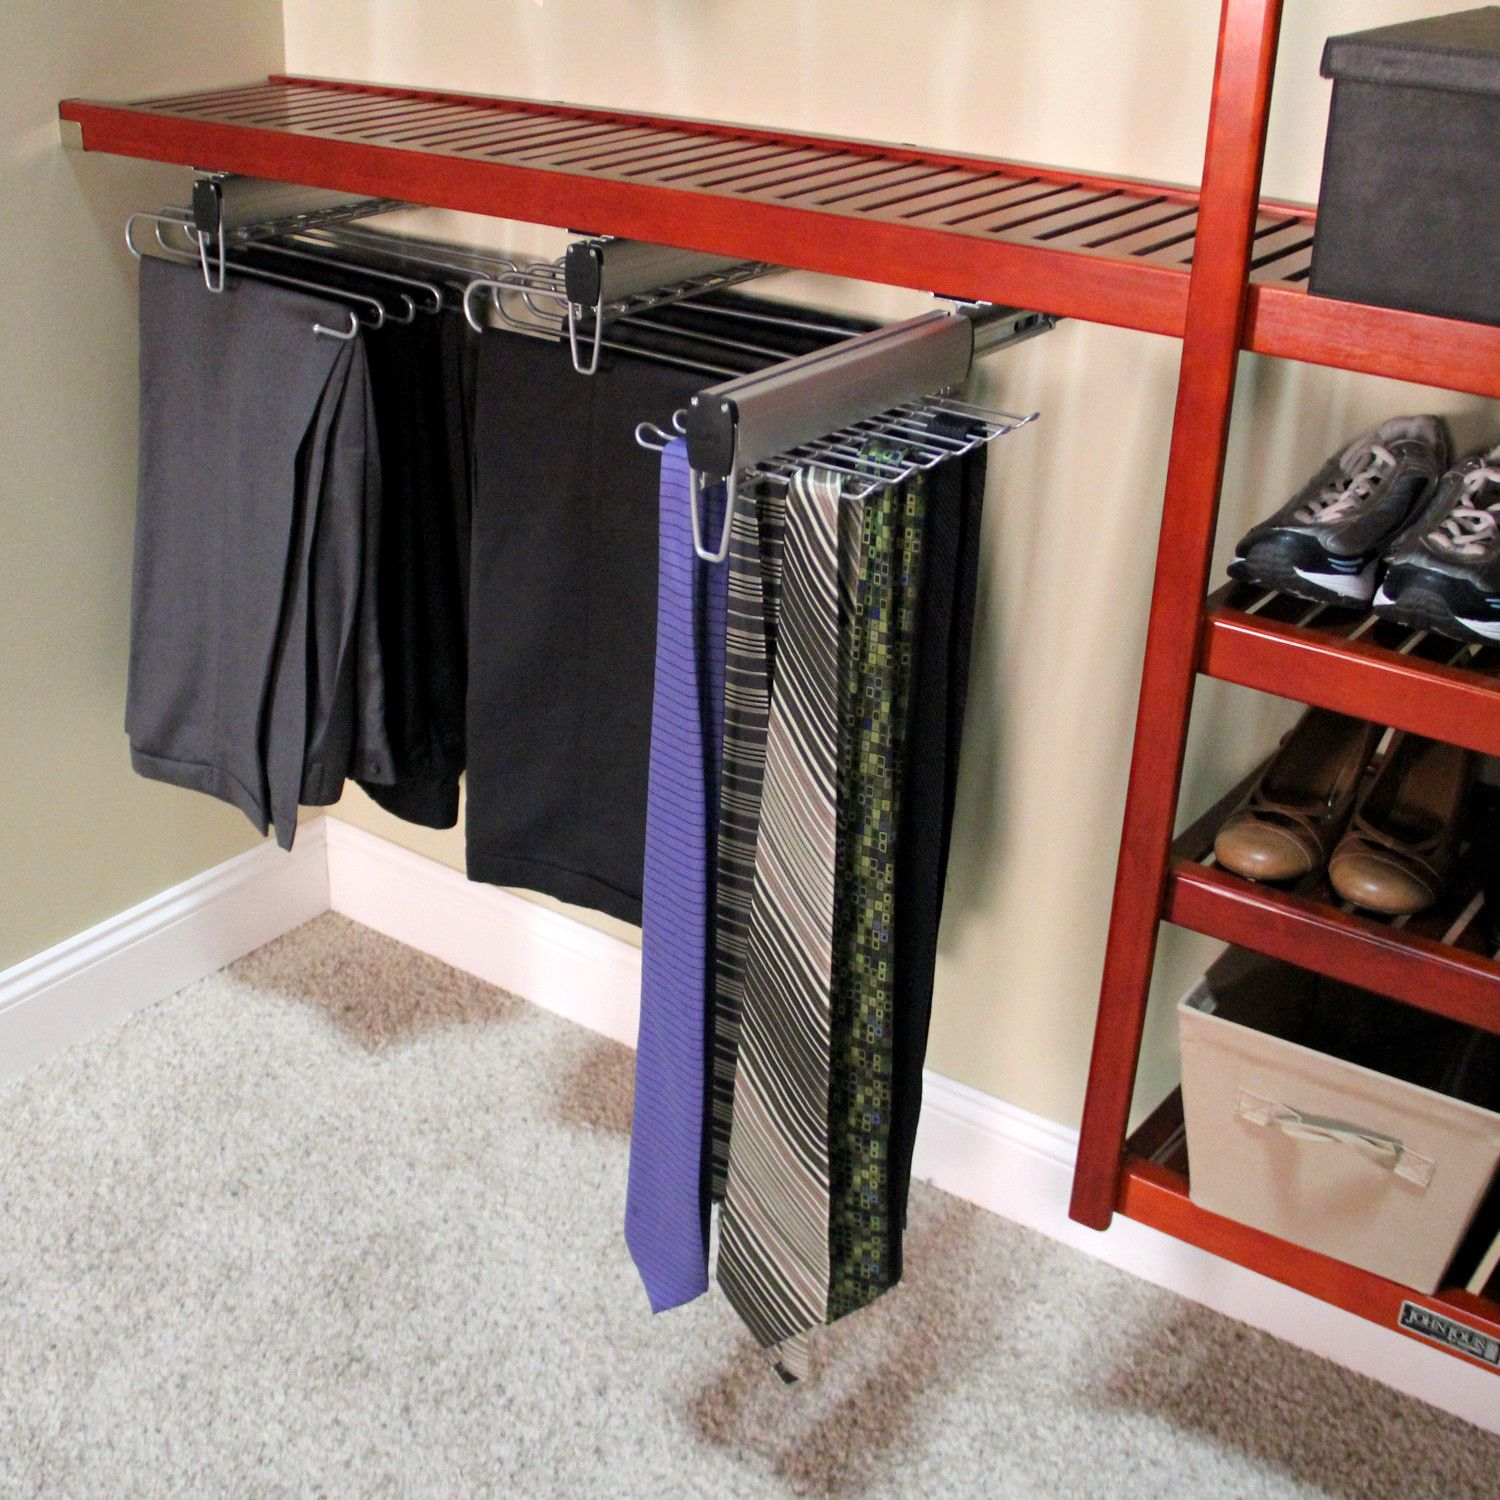 Best Tie Racks For Closets: Features: -Mounted Underneath Shelf. -Full Extension Ball